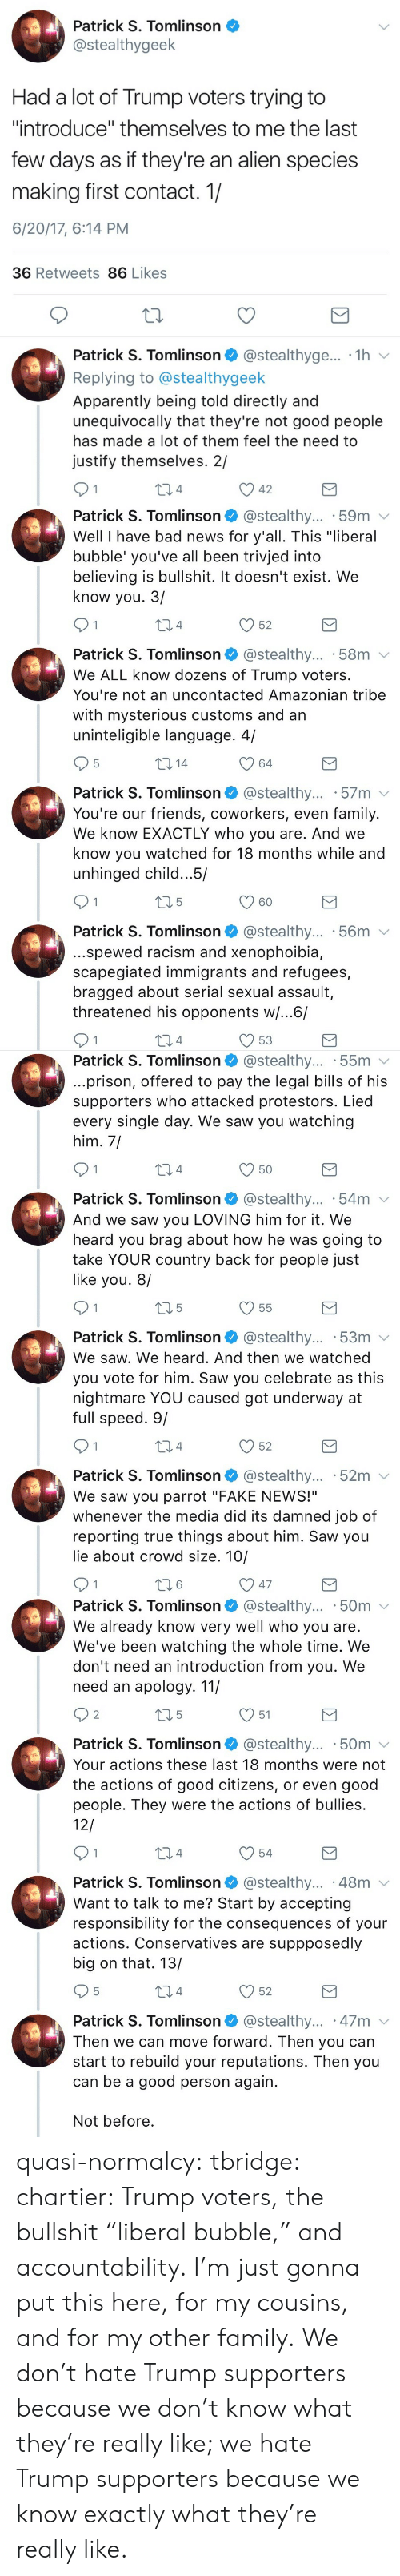 """We Heard You: Patrick S. Tomlinson  @stealthygeek  Had a lot of Trump voters trying to  """"introduce"""" themselves to me the last  few days as if they're an alien species  making first contact. 1/  6/20/17, 6:14 PM  36 Retweets 86 Likes  Patrick S. Tomlinson @stealthyge... 1h v  Replying to @stealthygeek  Apparently being told directly and  unequivocally that they're not good people  has made a lot of them feel the need to  justify themselves. 2/  04  42   Patrick S. Tomlinson @stealthy... .59m v  Well I have bad news for y'all. This """"liberal  bubble' you've all been trivjed into  believing is bullshit. It doesn't exist. We  know you. 3/  4  52  Patrick S. Tomlinson @stealthy... 58m  We ALL know dozens of Trump voters.  You're not an uncontacted Amazonian tribe  with mysterious customs and an  uninteligible language. 4/  5  64  Patrick S. Tomlinson @stealthy... 57m v  You're our friends, coworkers, even family.  We know EXACTLY who you are. And we  know you watched for 18 months while and  unhinged child.. .5/  60  Patrick S. Tomlinson* @stealthy...-56m ﹀  ..spewed racism and xenophoibia,  scapegiated immigrants and refugees,  bragged about serial sexual assault,  threatened his opponents w/...6/  4  53   Patrick S. Tomlinson @stealthy... 55m v  prison, offered to pay the legal bills of his  supporters who attacked protestors. Lied  every single day. We saw you watching  him, 7  4  Patrick S. Tomlinson @stealthy... .54m  And we saw you LOVING him for it. We  heard you brag about how he was going to  take YOUR country back for people just  like you. 8/  V55  Patrick S. Tomlinson* @stealthy...-53m  We saw. We heard. And then we watched  you vote for him. Saw you celebrate as this  nightmare YOU caused got underway at  full speed. 9/  4  52  Patrick S. Tomlinson @stealthy... 52m v  We saw you parrot """"FAKE NEWS!""""  whenever the media did its damned job of  reporting true things about him. Saw you  lie about crowd size. 10/  6   Patrick S. Tomlinson @stealthy... .50m  We alre"""